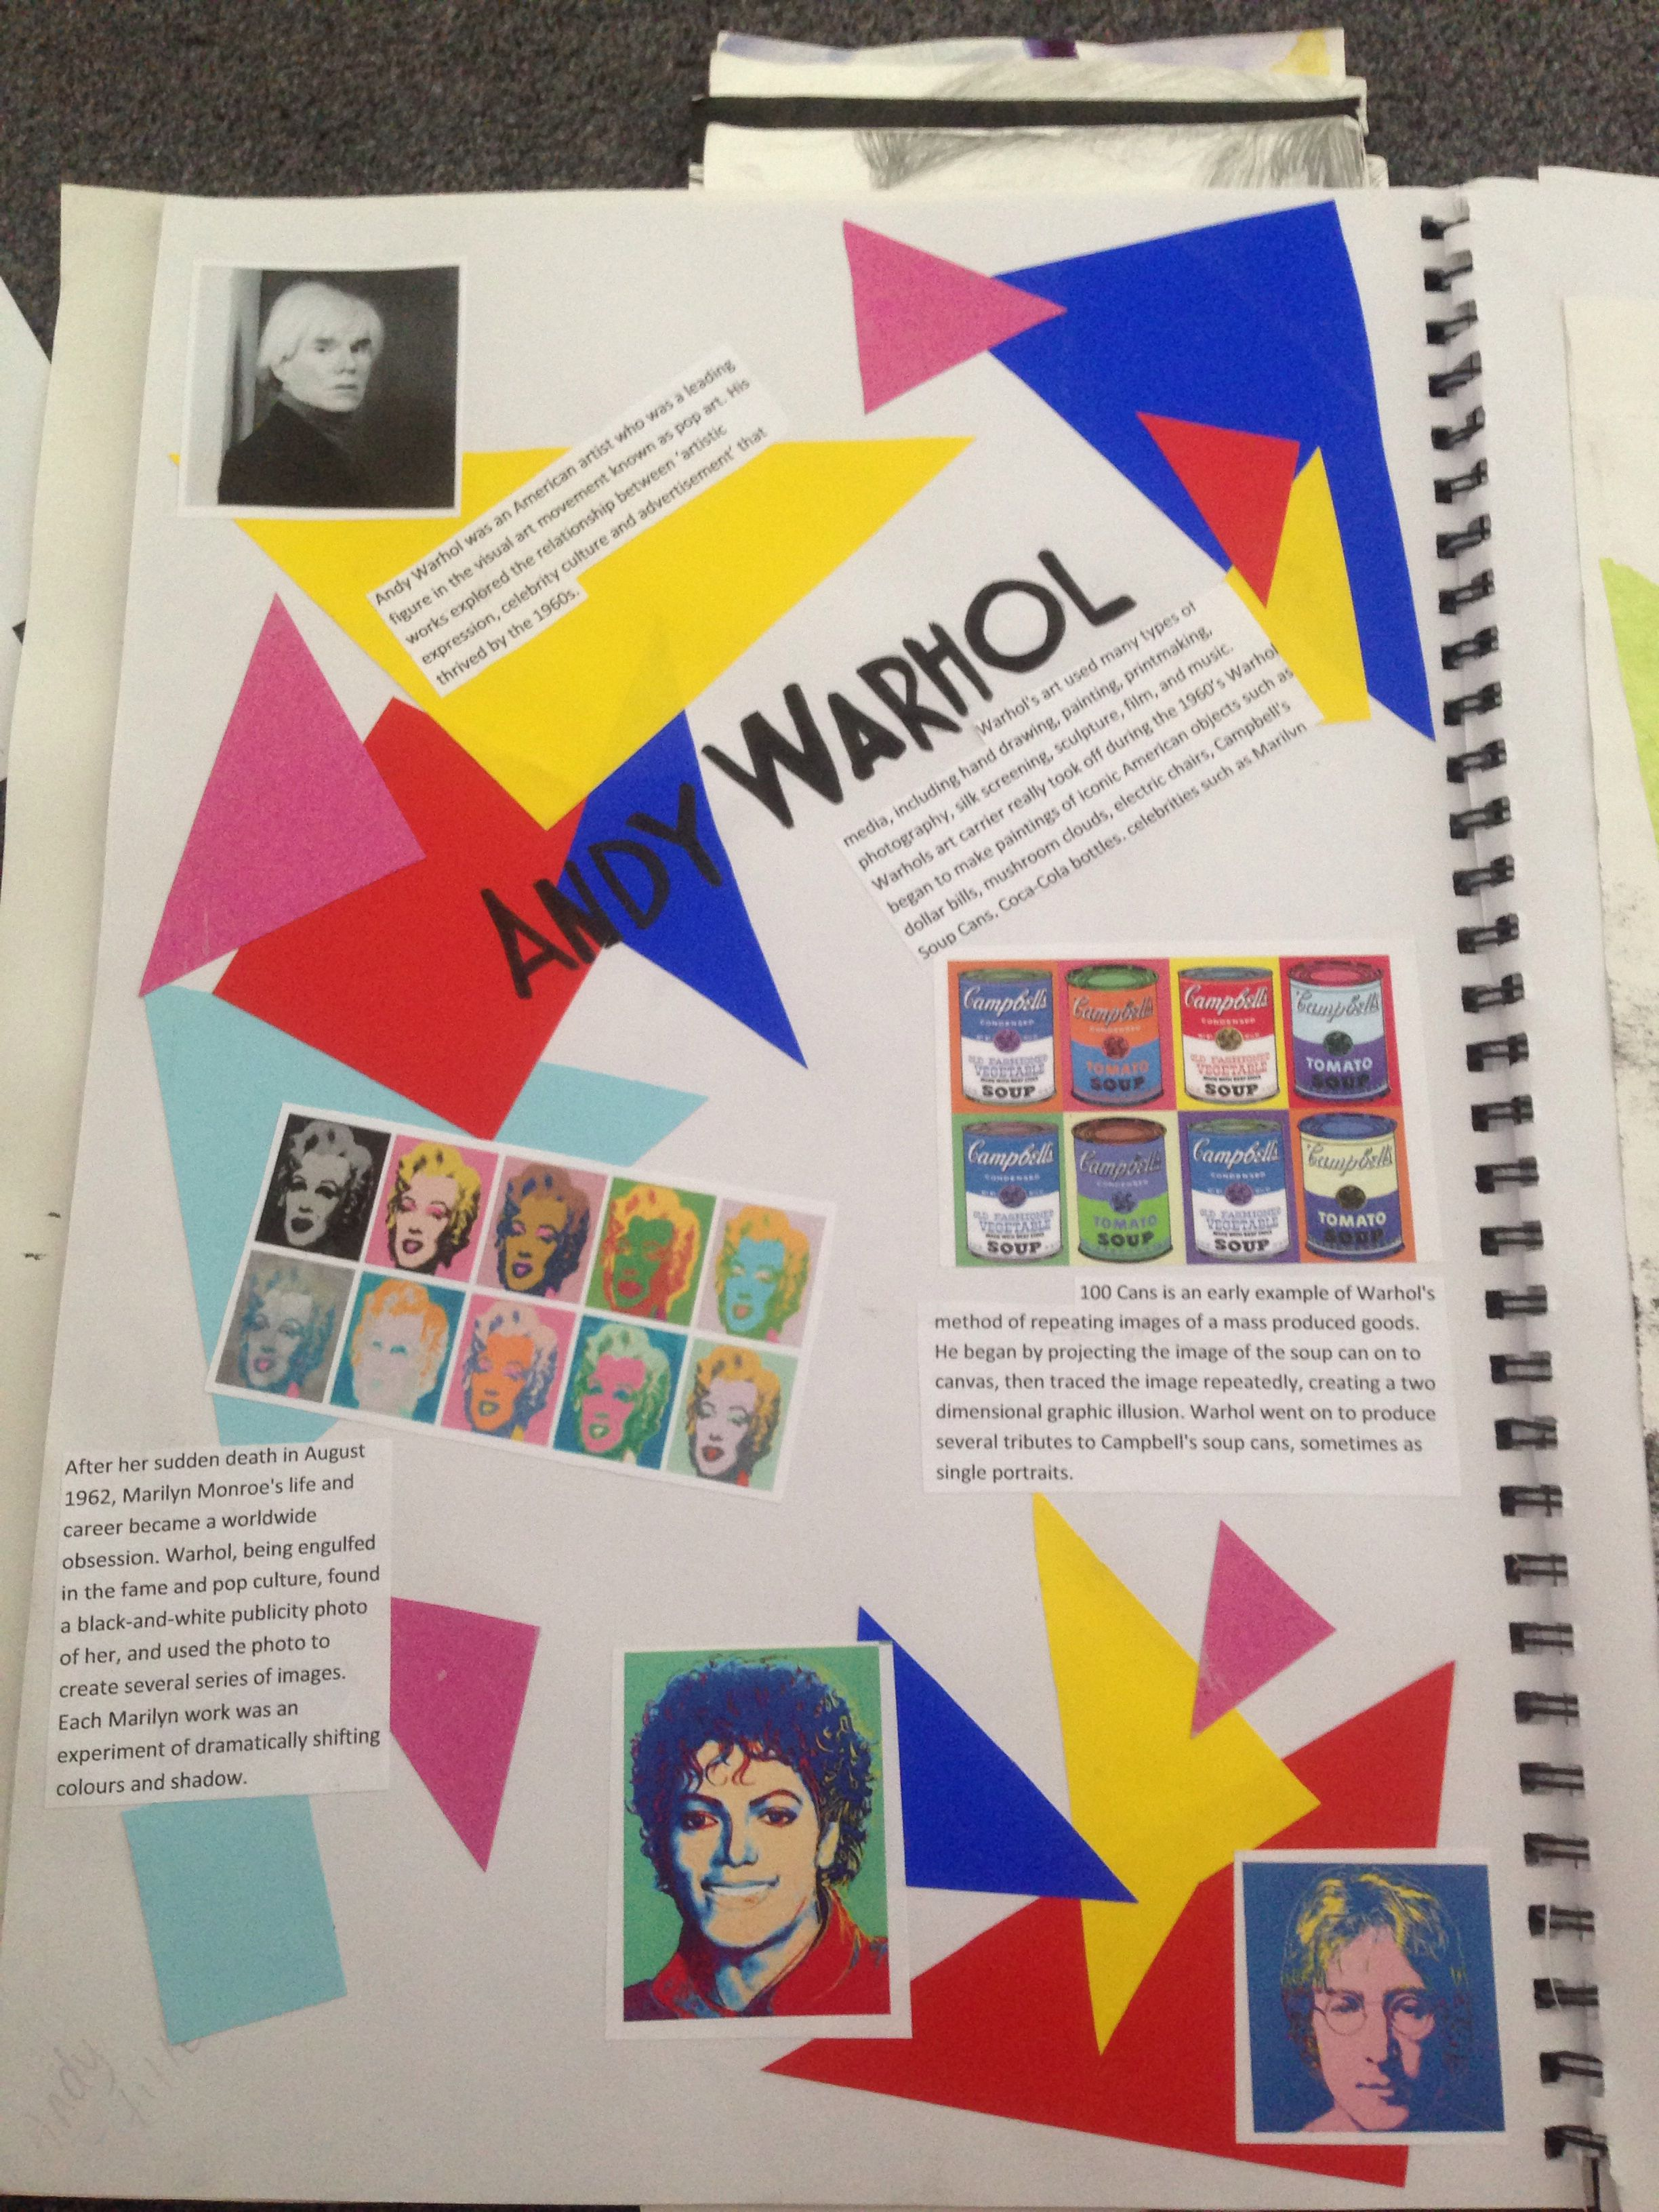 Andy warhol research papers sample of recommendation in research paper